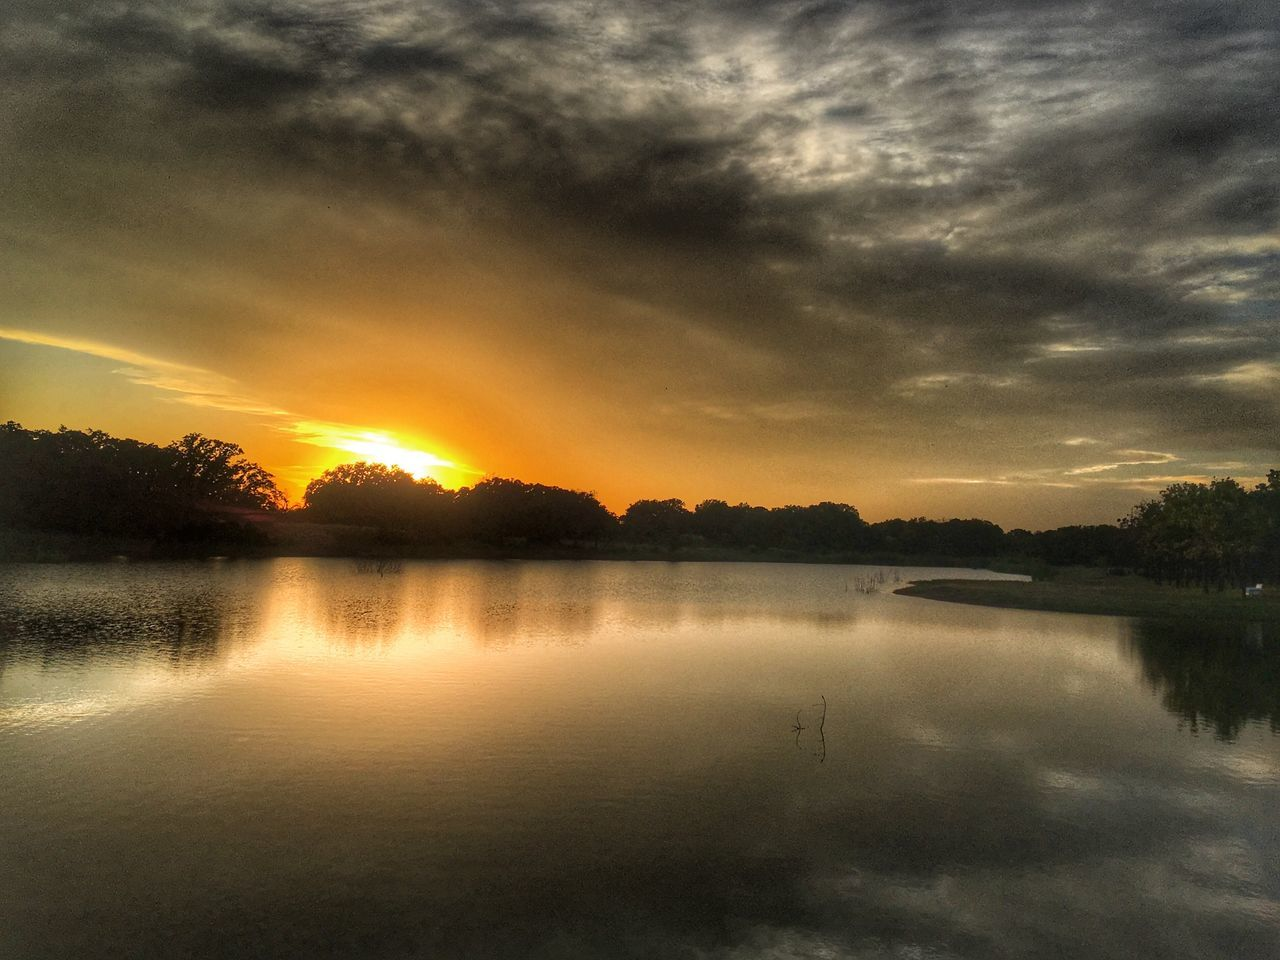 reflection, sunset, water, sky, nature, cloud - sky, tranquil scene, scenics, lake, beauty in nature, tranquility, no people, tree, outdoors, day